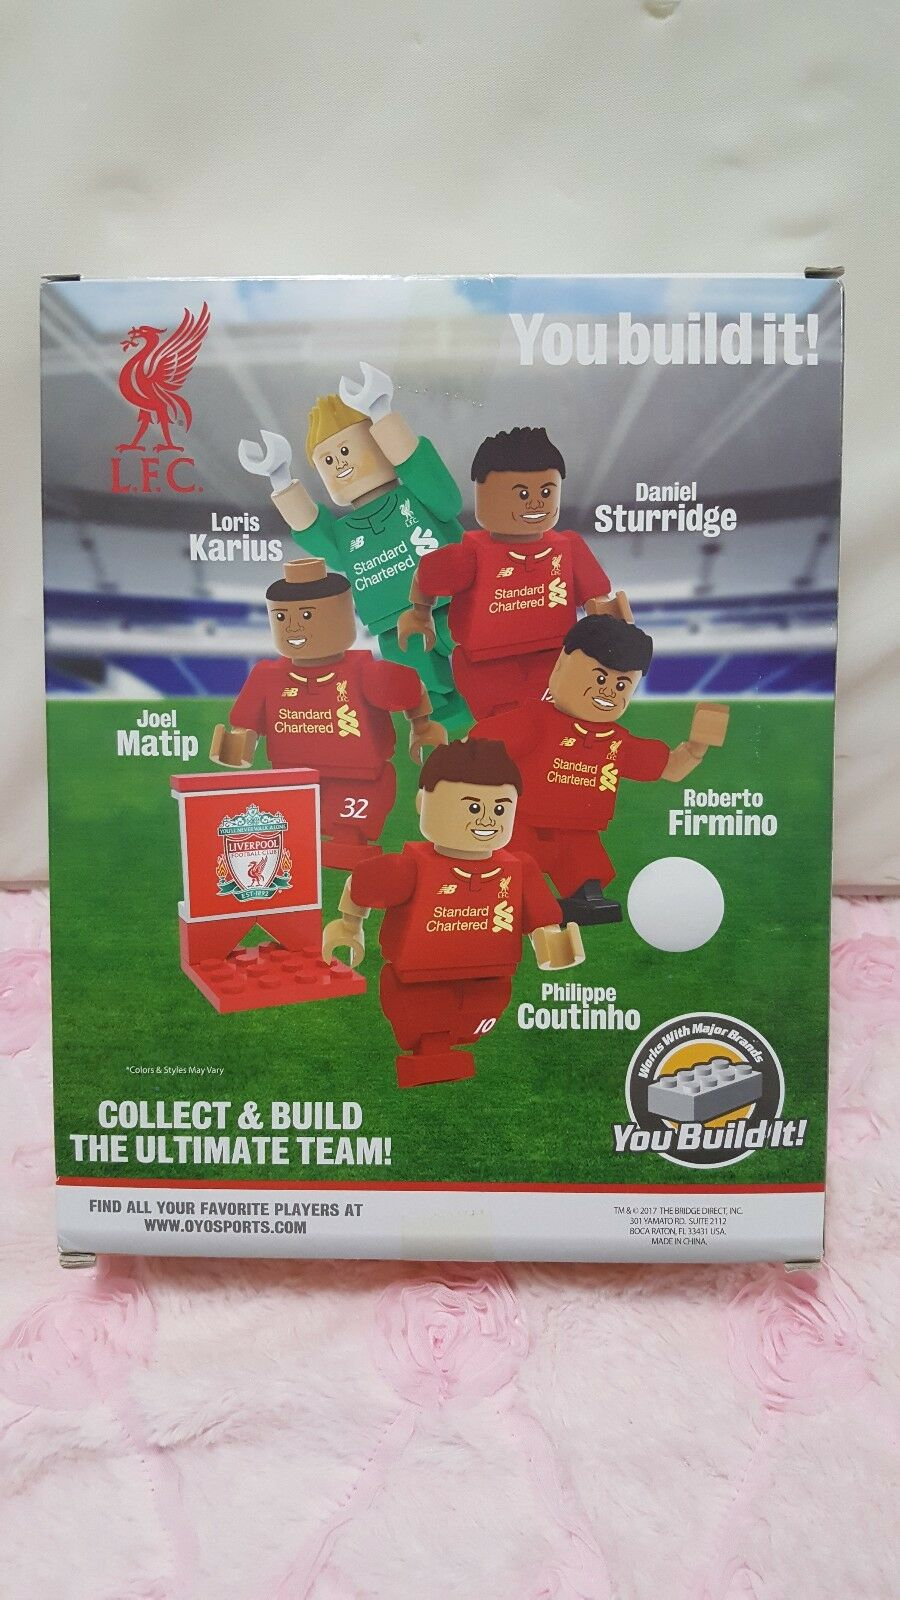 LFC Liverpool FC Collector Set Soccer Team Team Team Collect and Build The Ultimate Team fd78a1